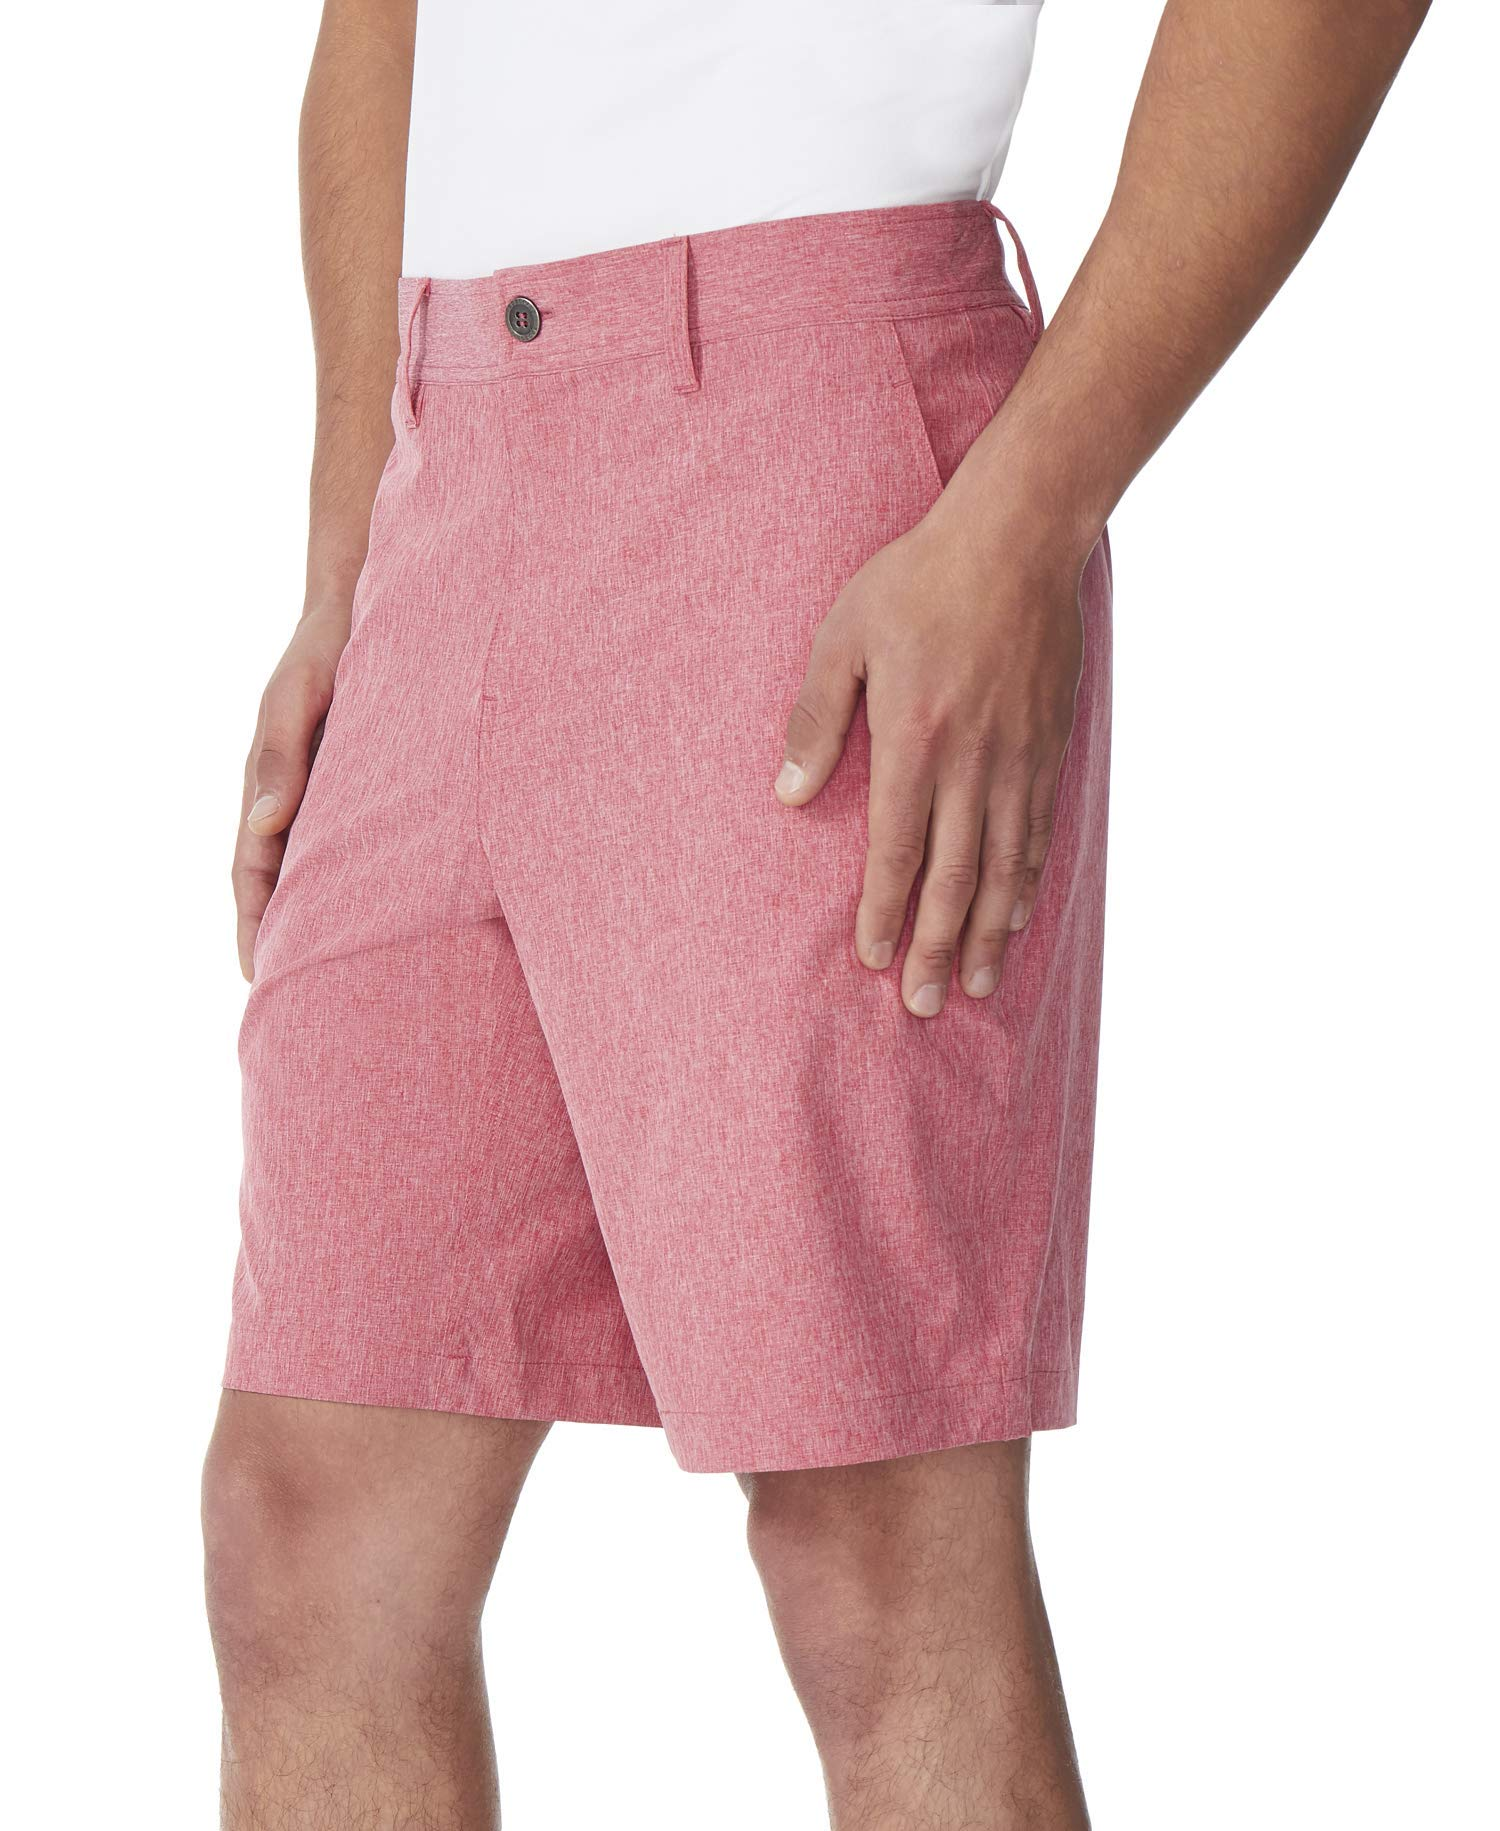 New-32-Degrees-Mens-Shorts-Solid-Bright-Red-Size-38-Stretch-Performance-39-313 thumbnail 2